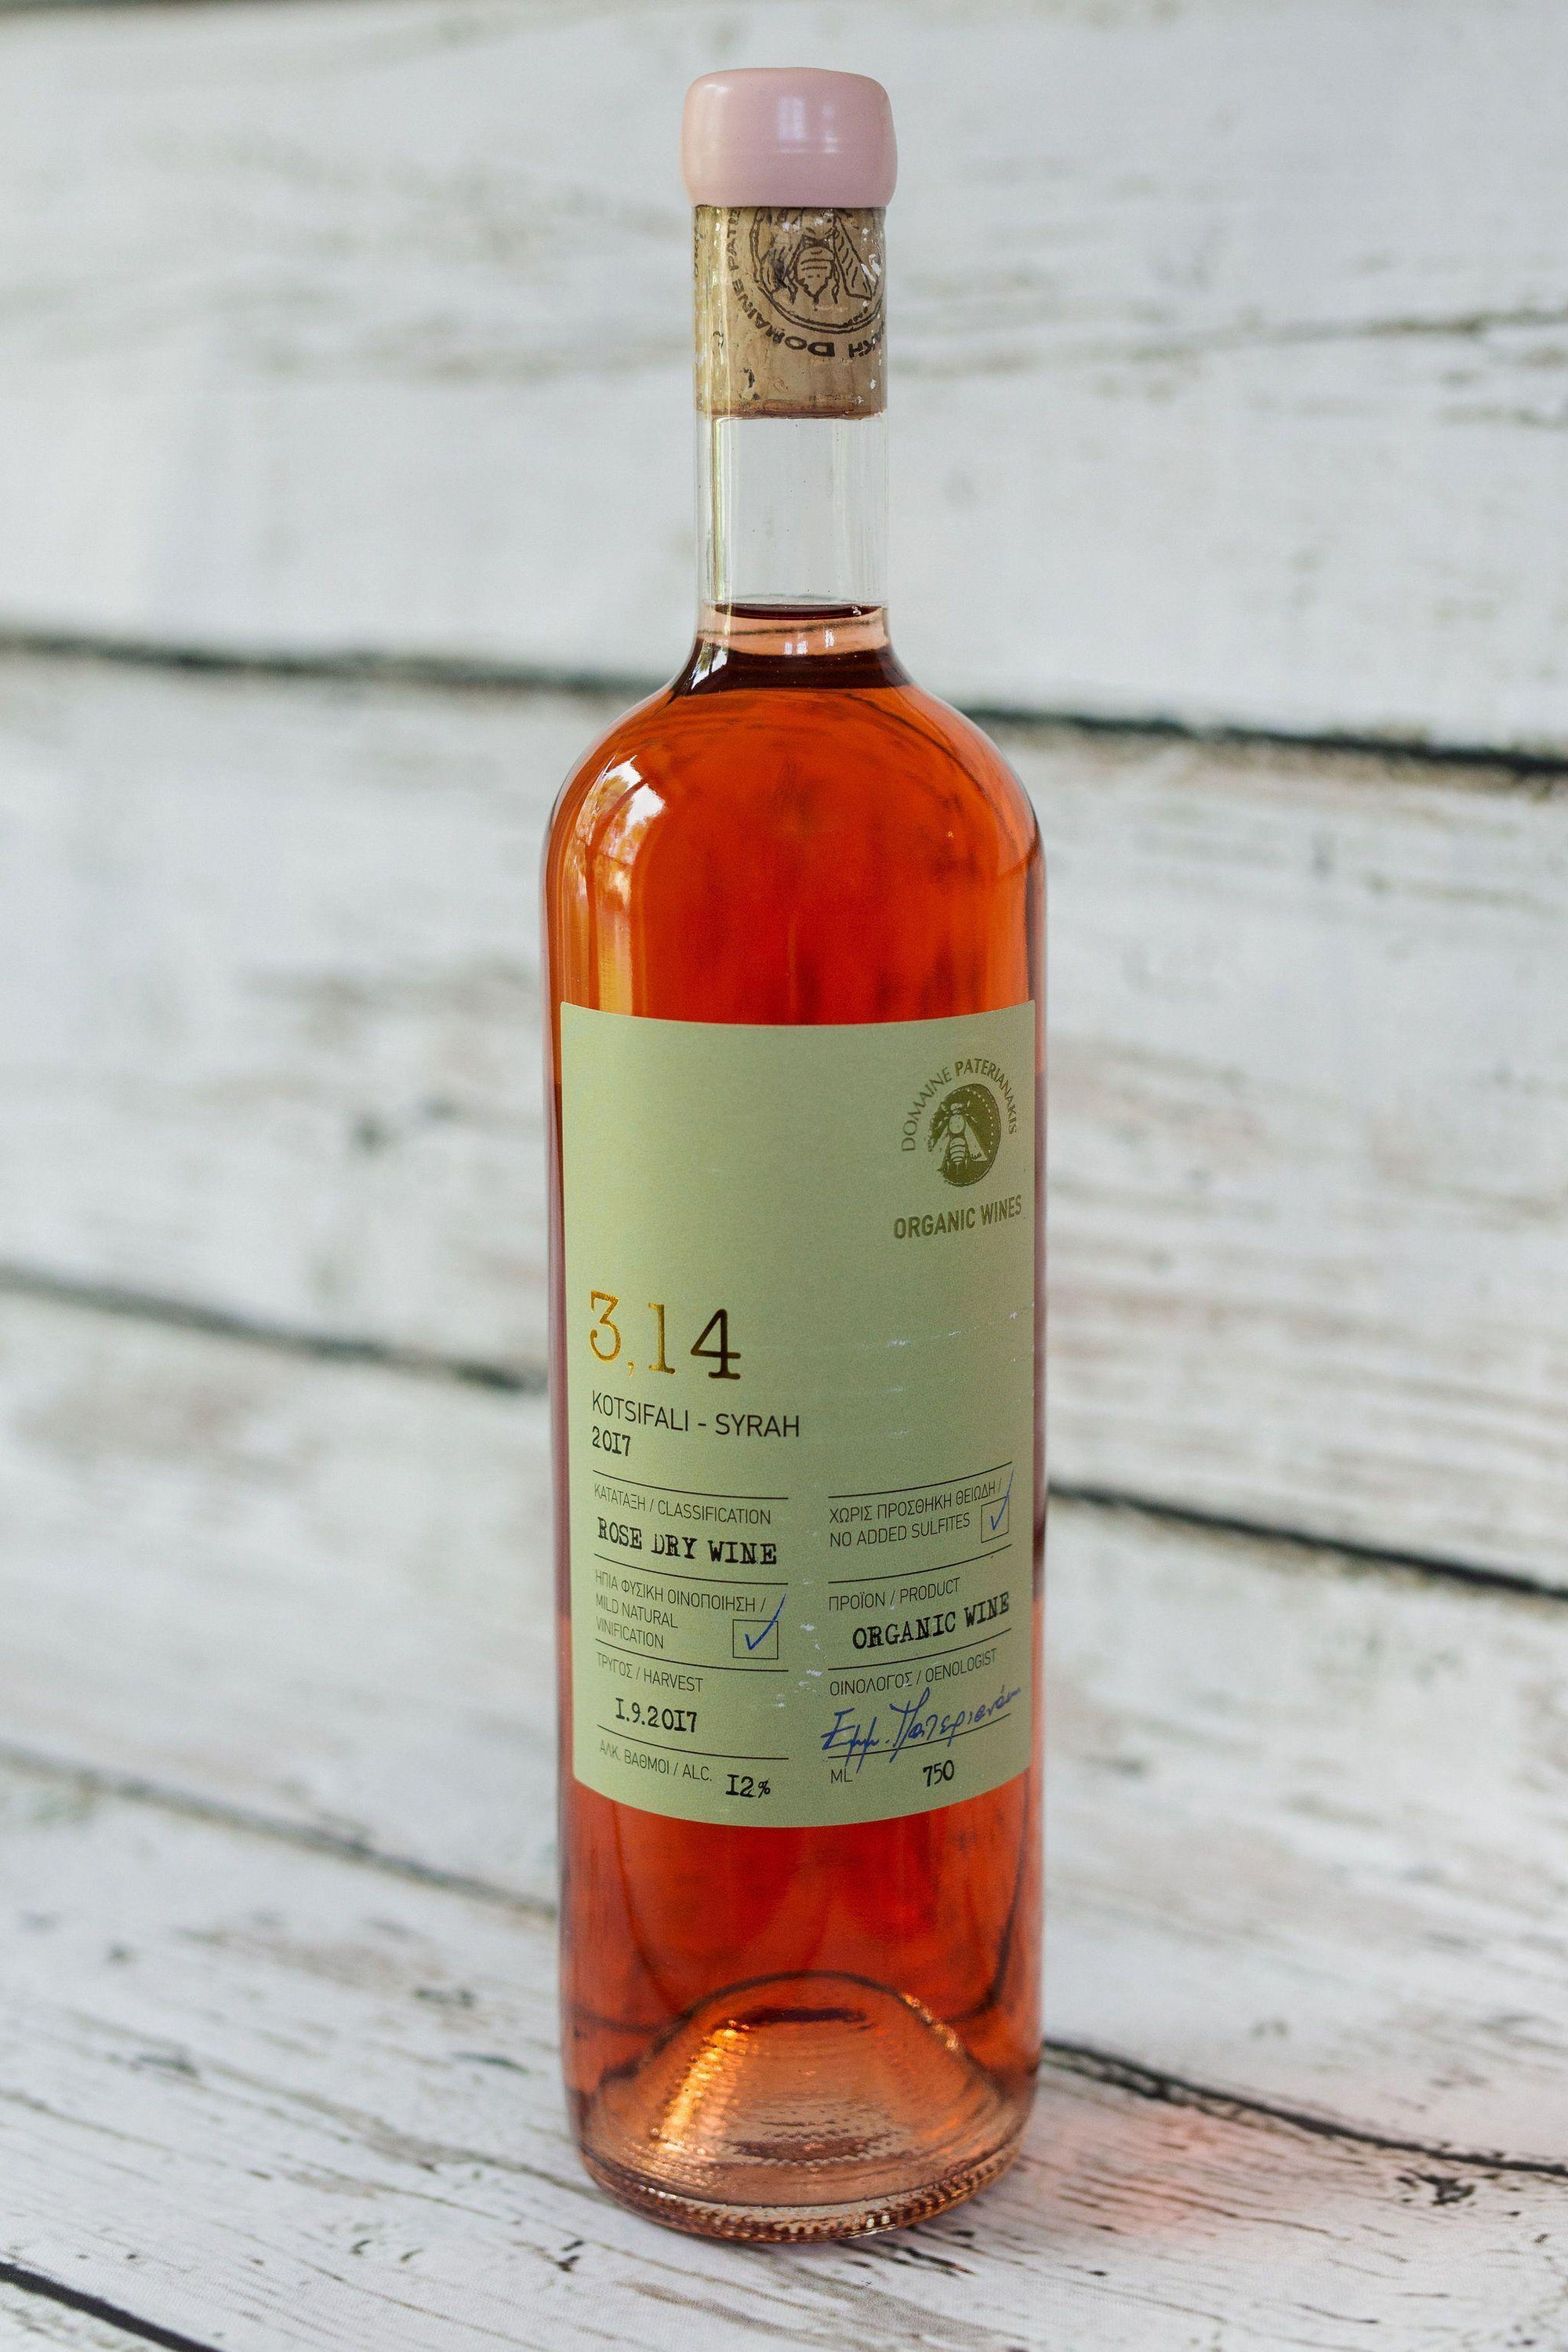 750ml clear wine bottle of 3.14 Kotsifali rosé wine from Domain Paterianakis with green label, cork with pink wax seal